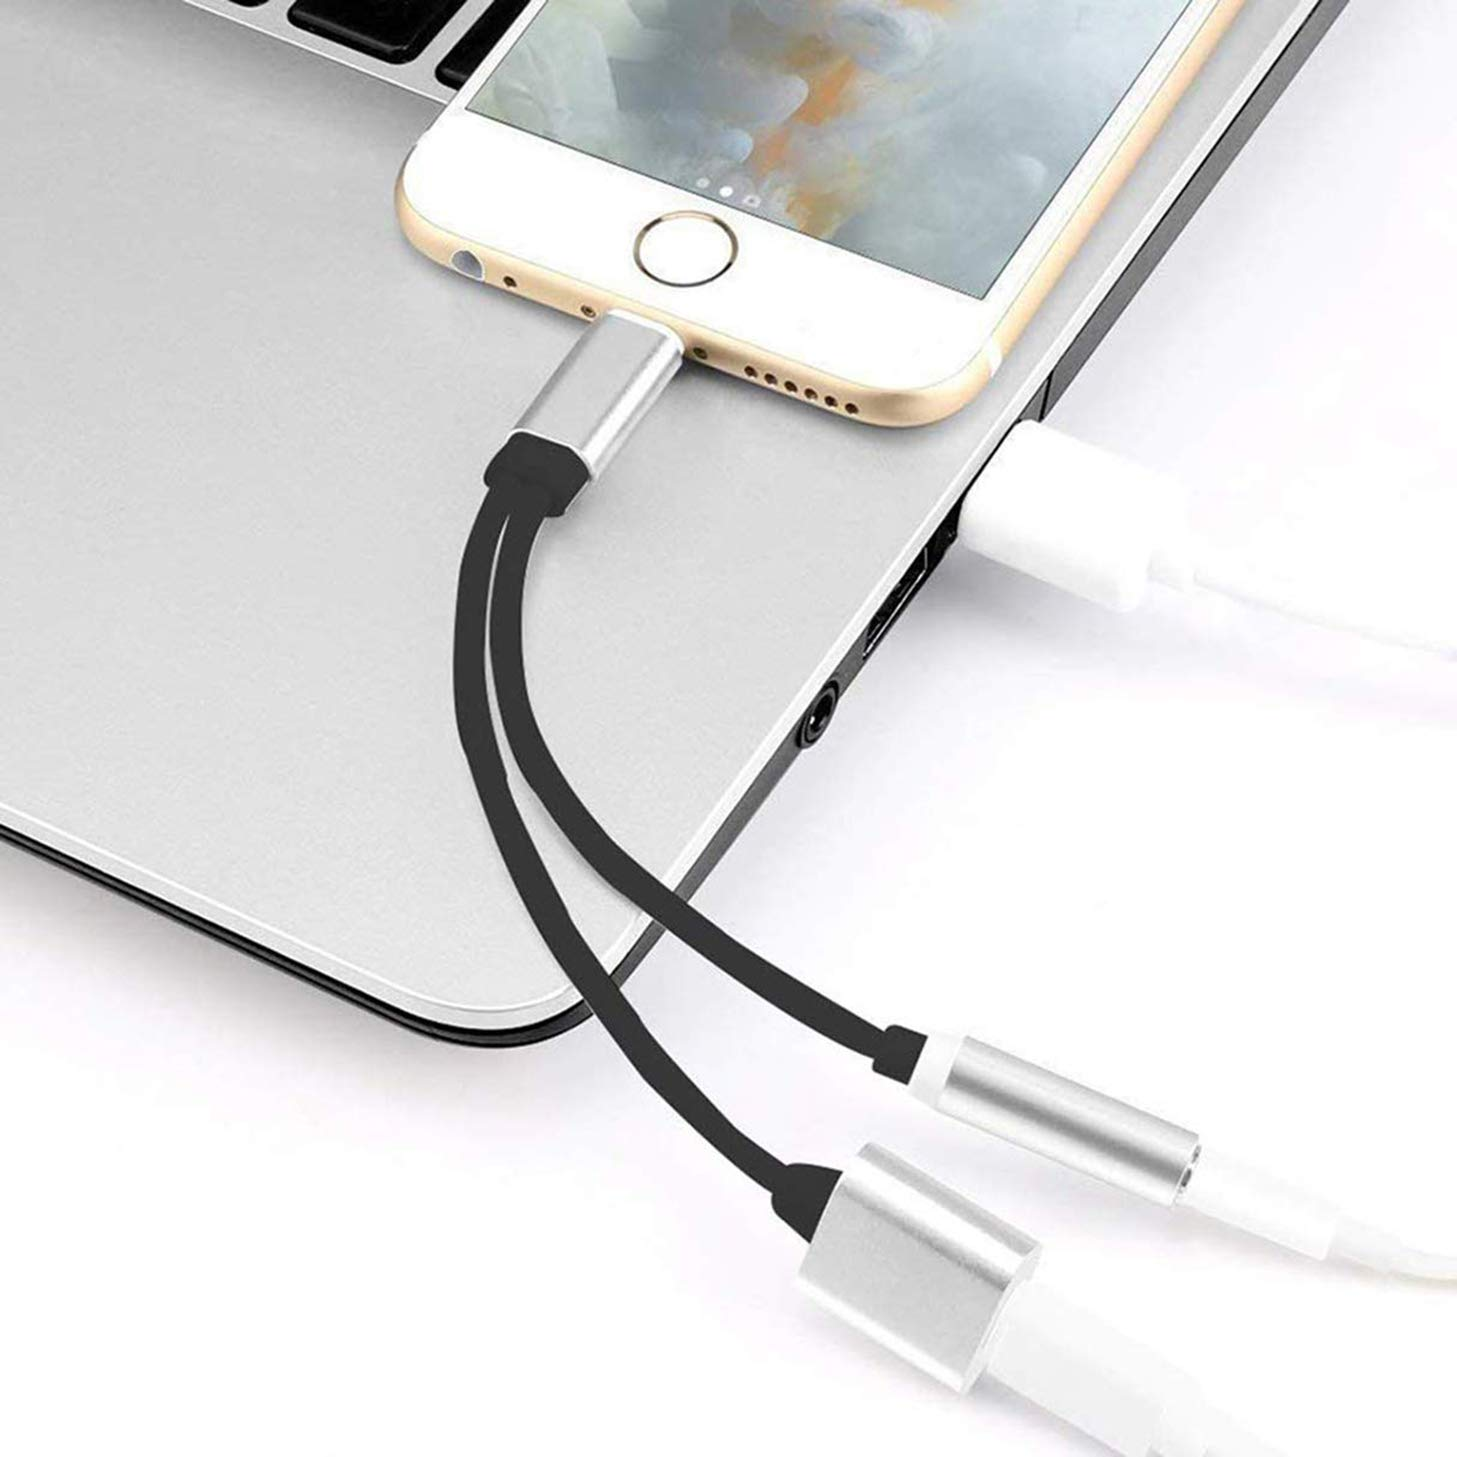 Headphones Adapter for iPhone 8 Aux Cable 3.5mm Jack Cable Earphones Compatible with iPhone Xs//Xs Max//XR //8//8Plus//7Plus 2 in 1 Earphone Music /& Charge Jack Dongle Splitter Cable Support iOS 12/—Silver